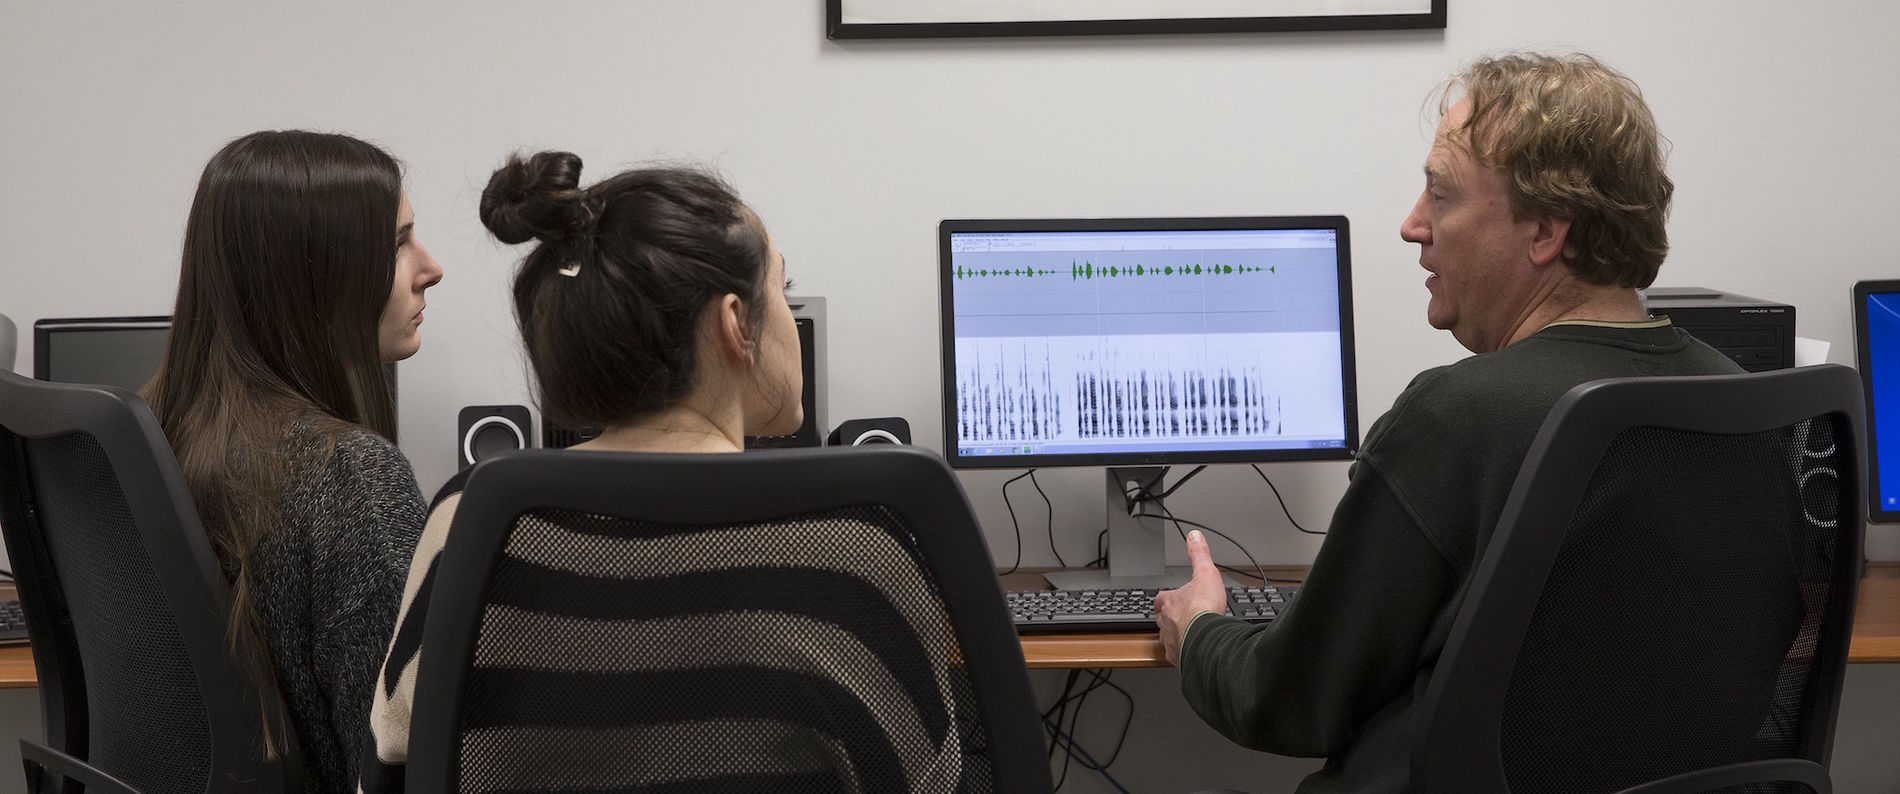 Students examine sound waves on computer screen